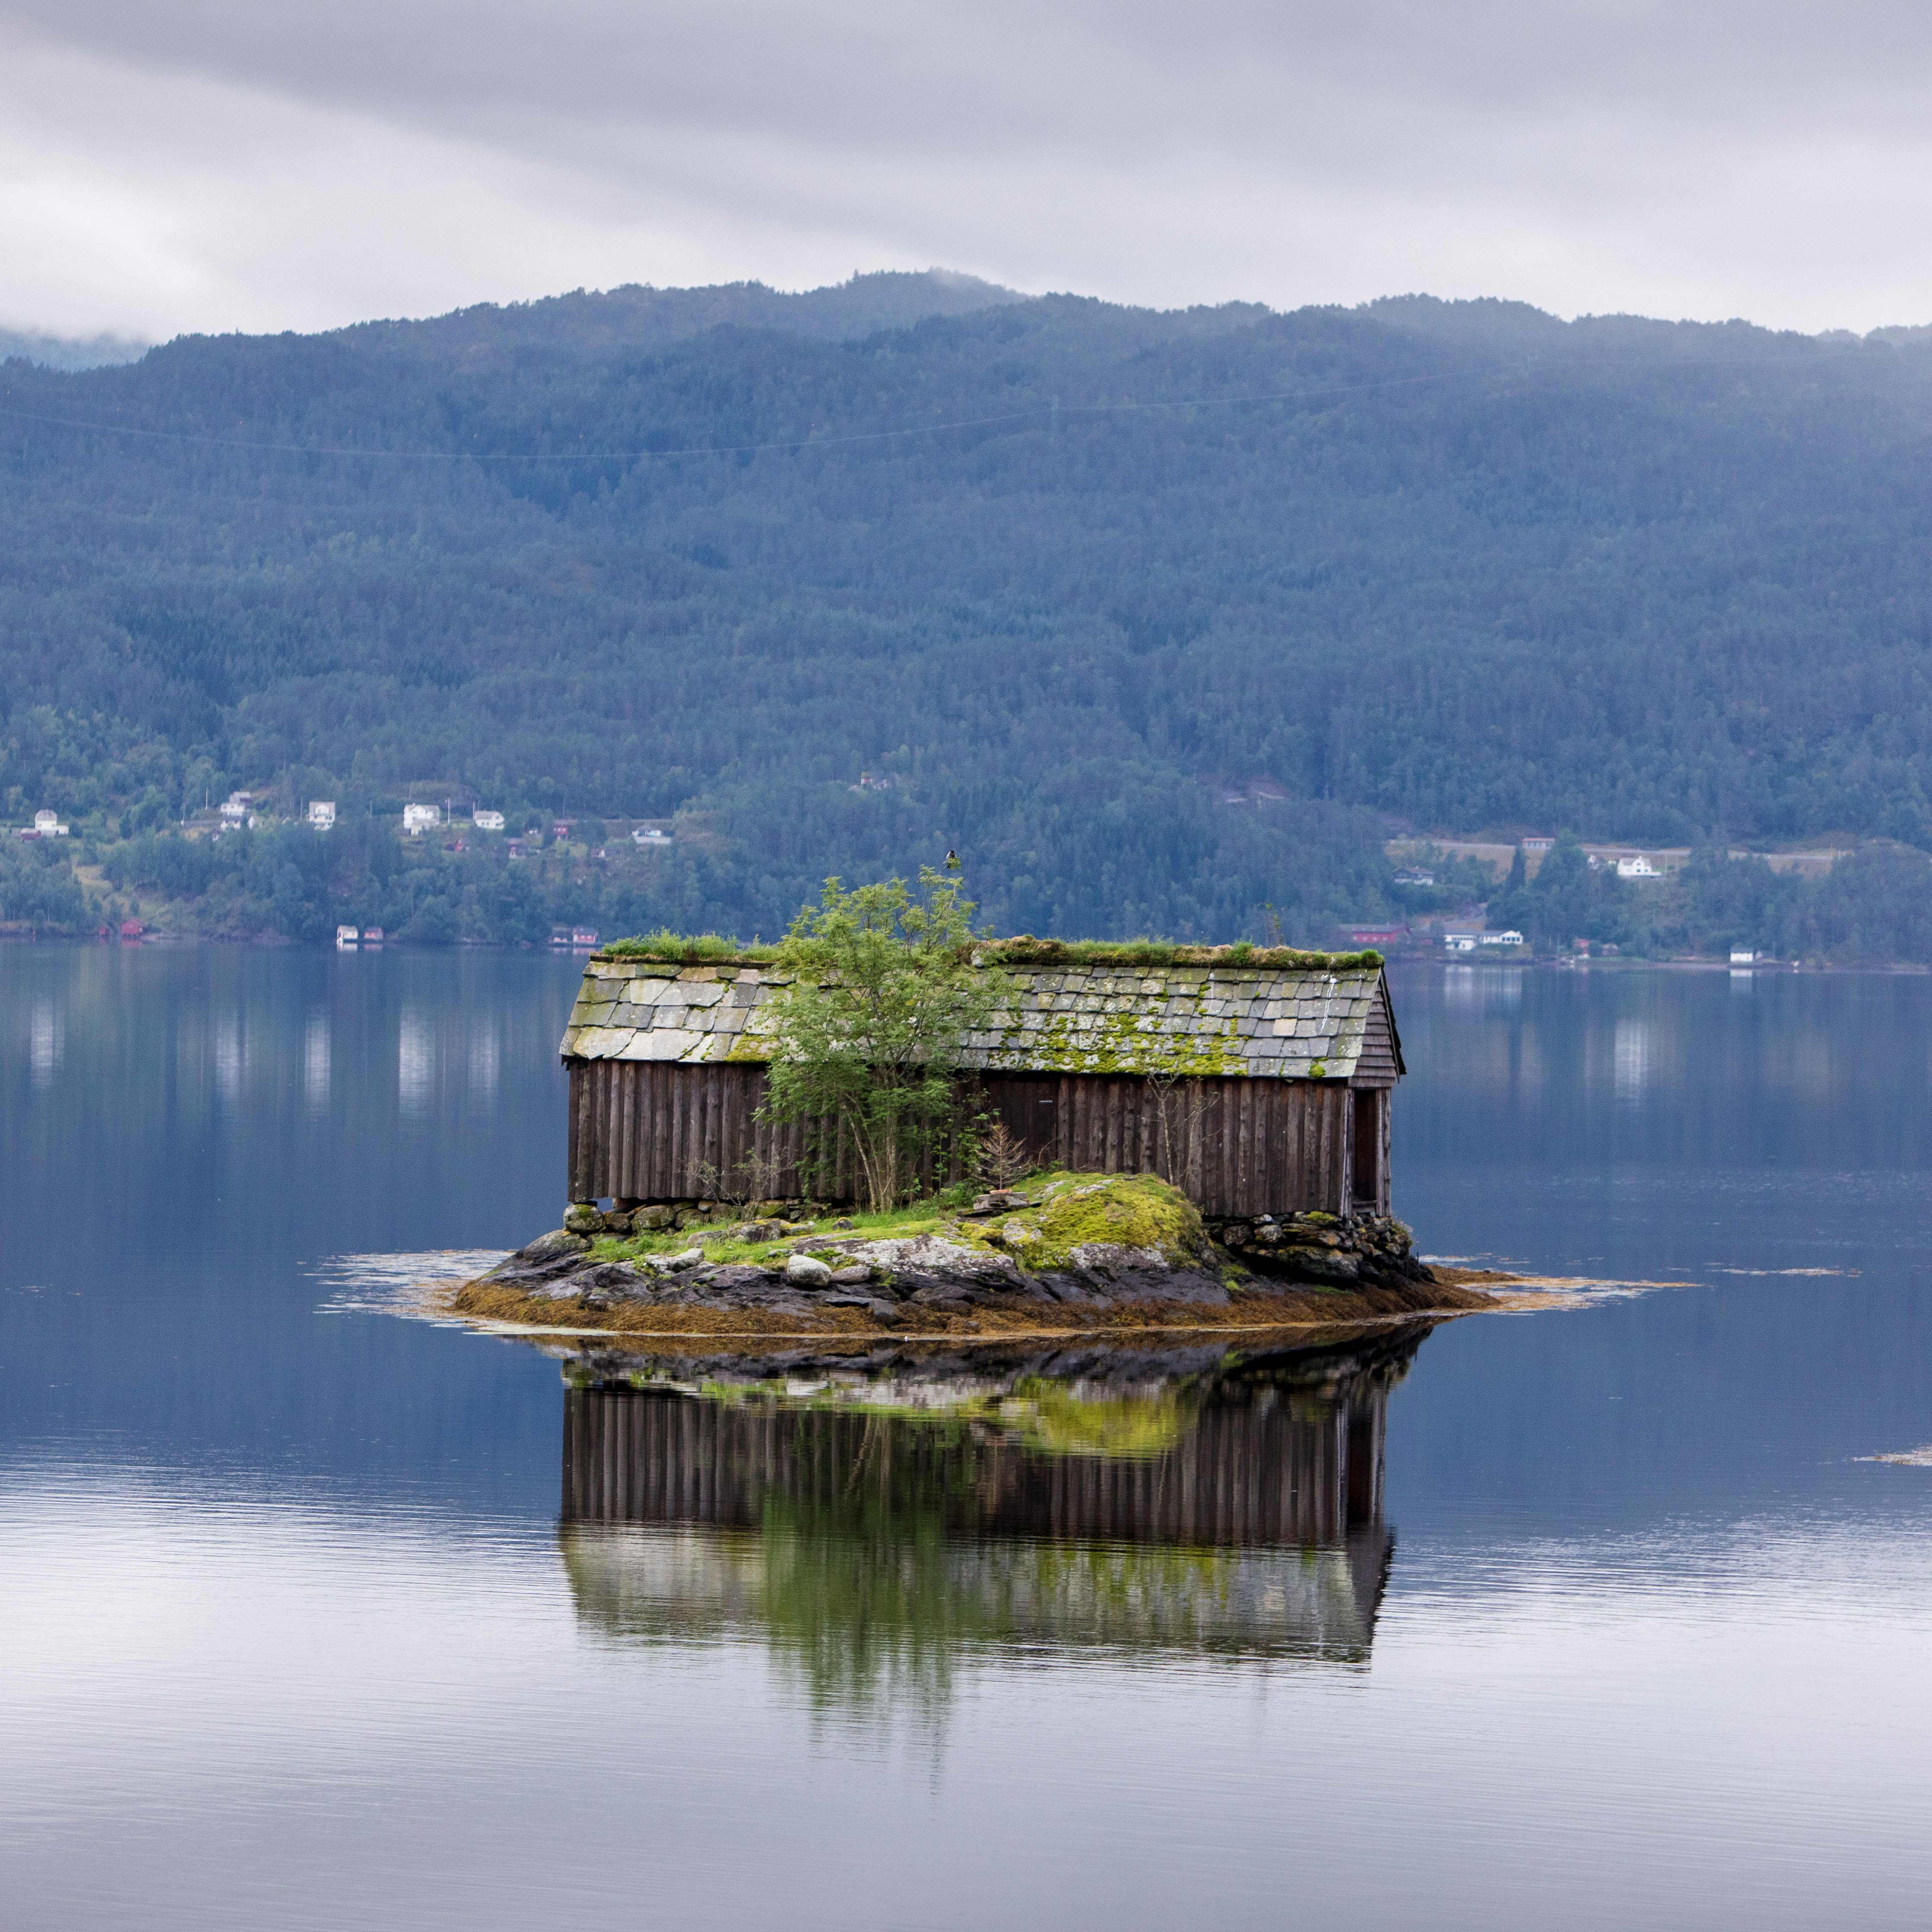 A small brown wood house sitting on an island in the middle of the blue Hardangerfjord surrounded by water and with a small hillside in the background.